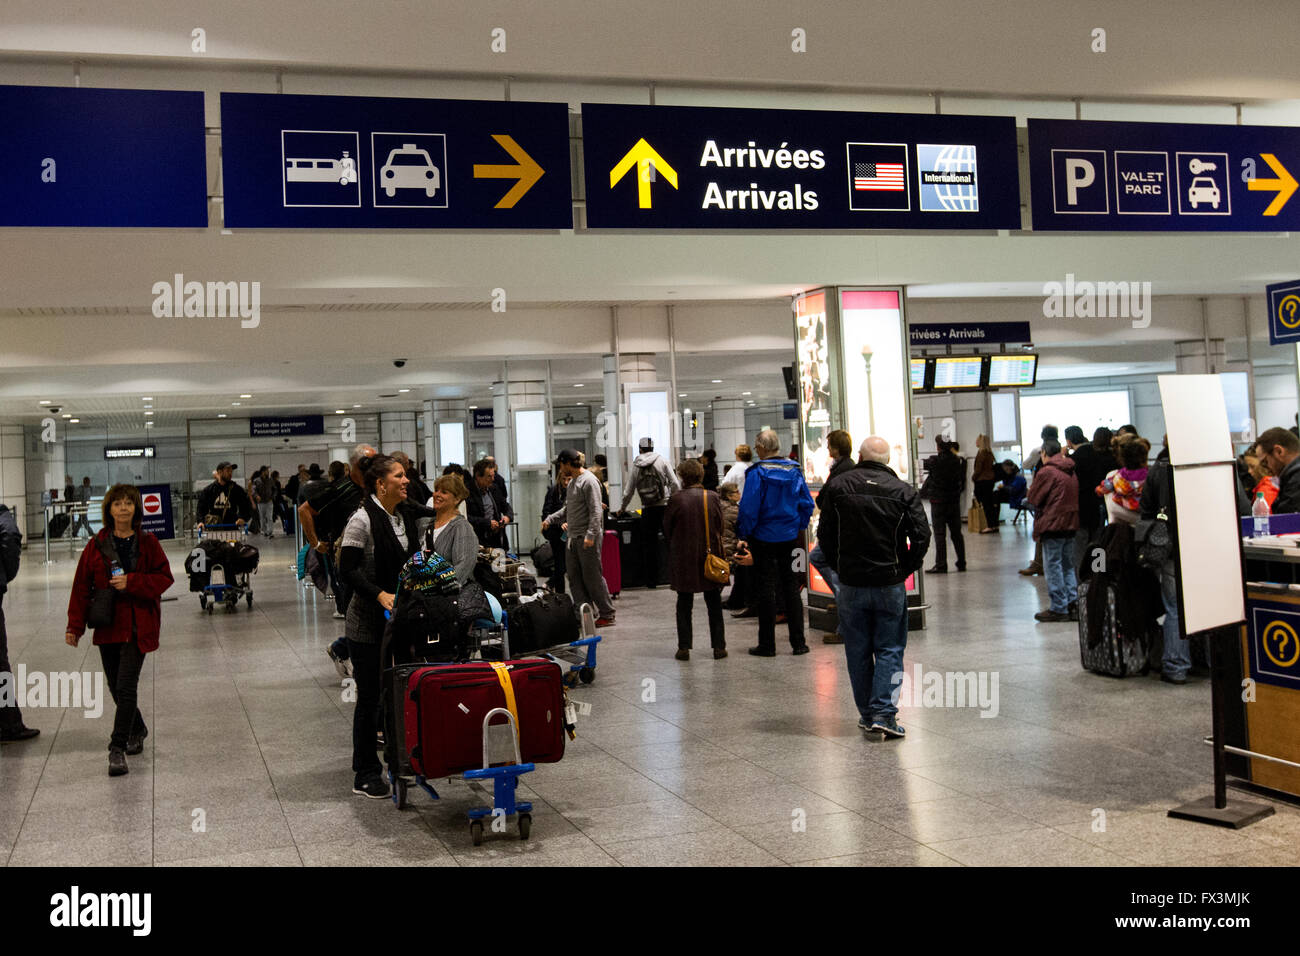 Arrival area at Pierre Elliot Trudeau airport in Montreal, Que., on Saturday Nov. 7, 2015. - Stock Image